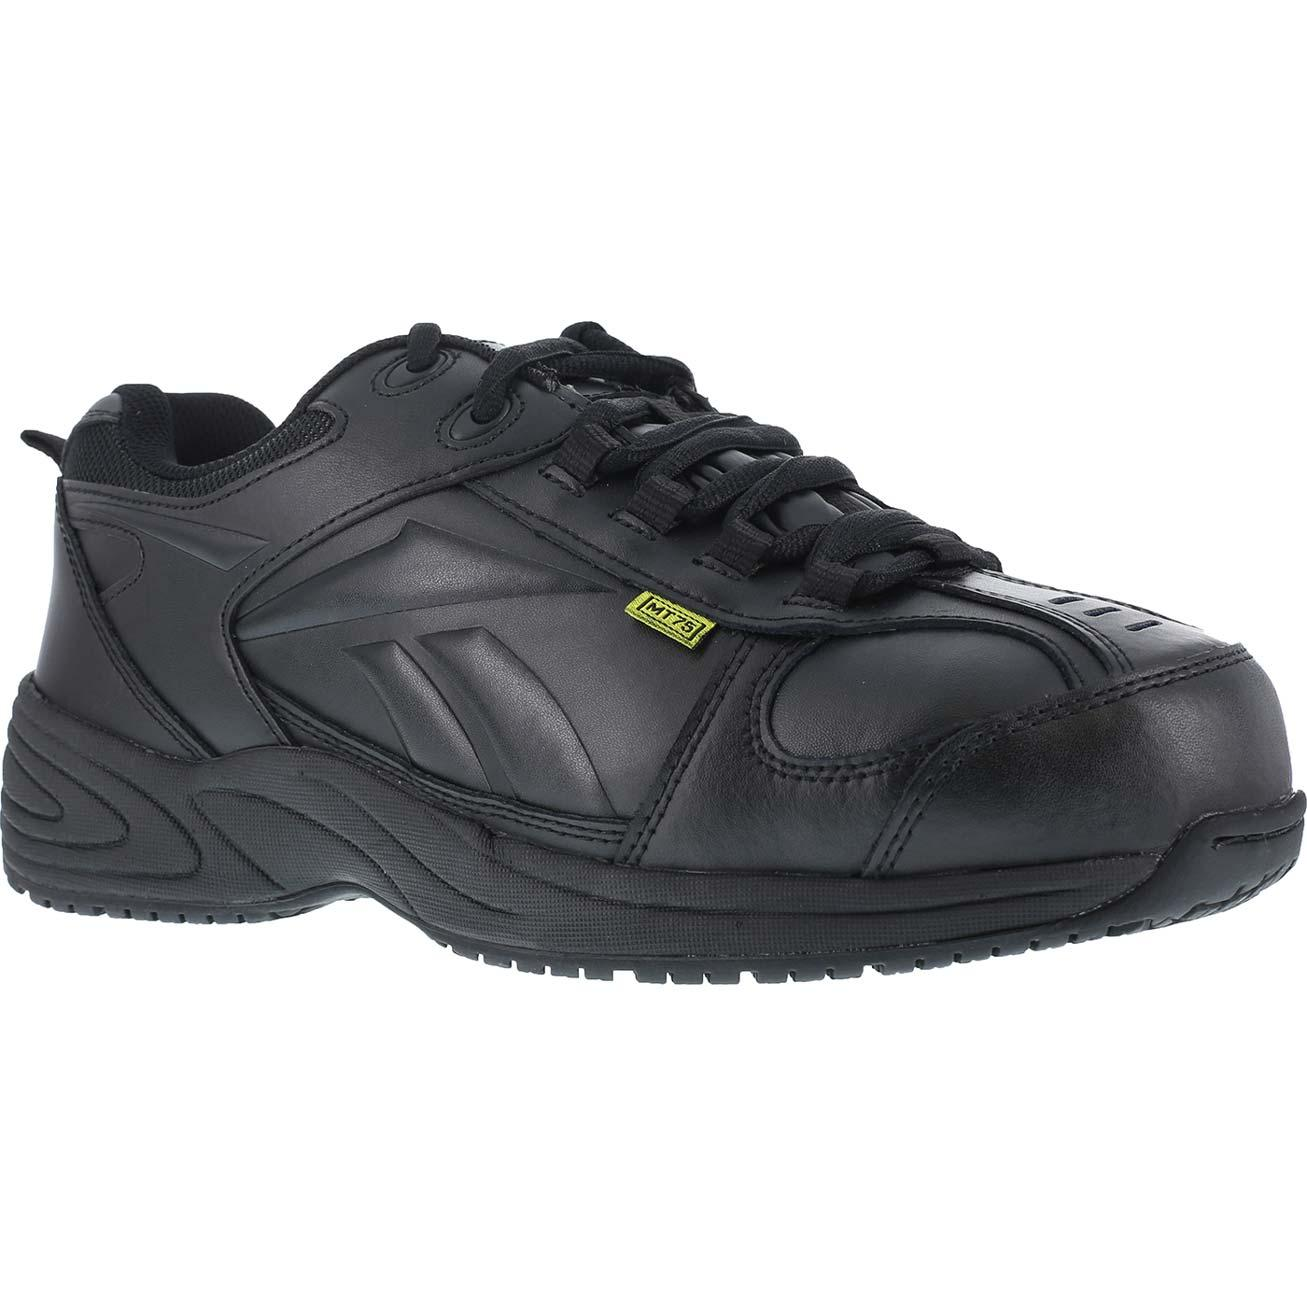 Reebok Centose Women s Composite Toe Internal Met Guard Work ShoeReebok  Centose Women s Composite Toe Internal Met Guard Work Shoe a11df93c55